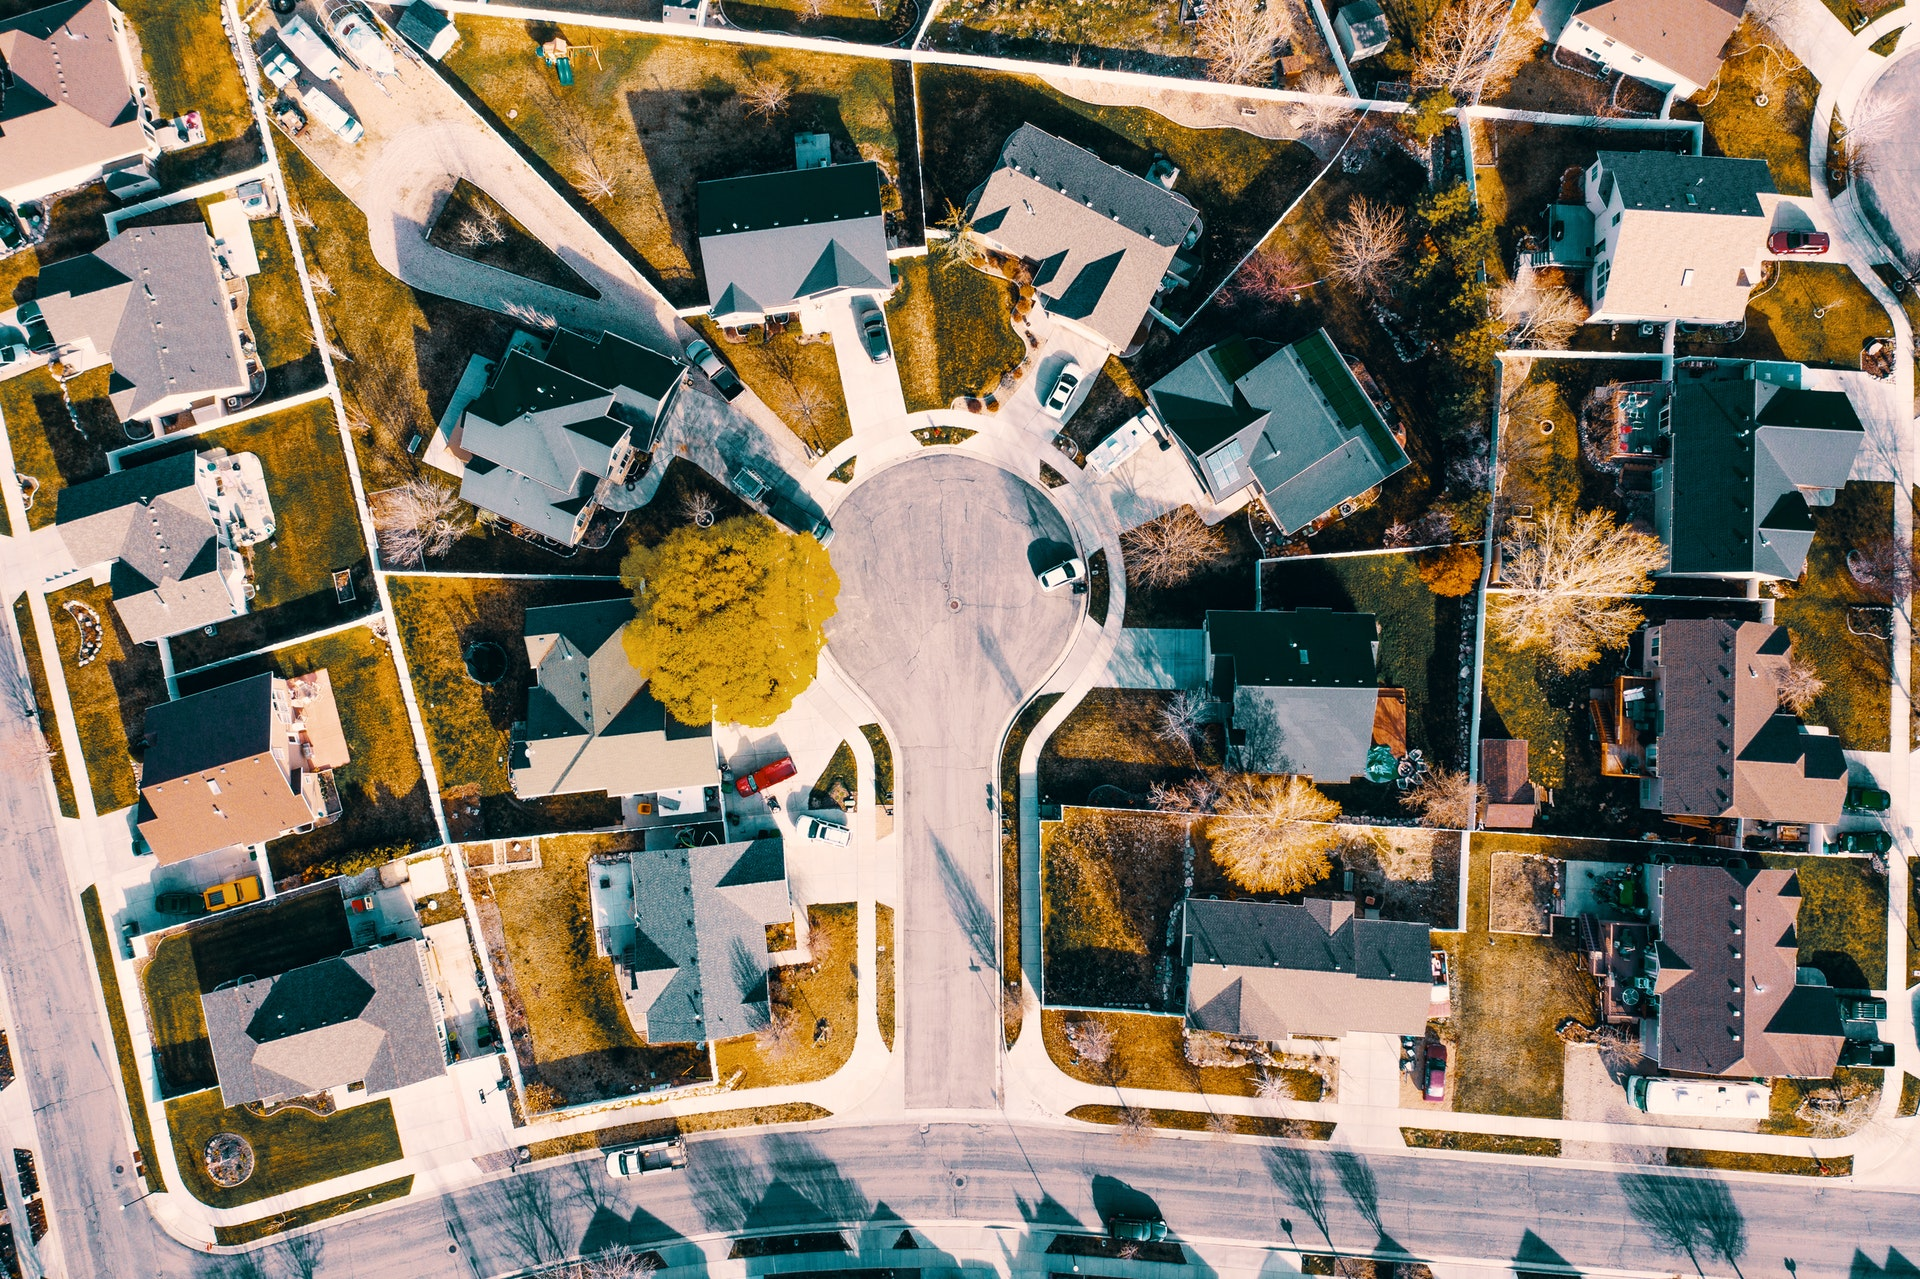 Aerial view of houses in a los angeles county neighborhood